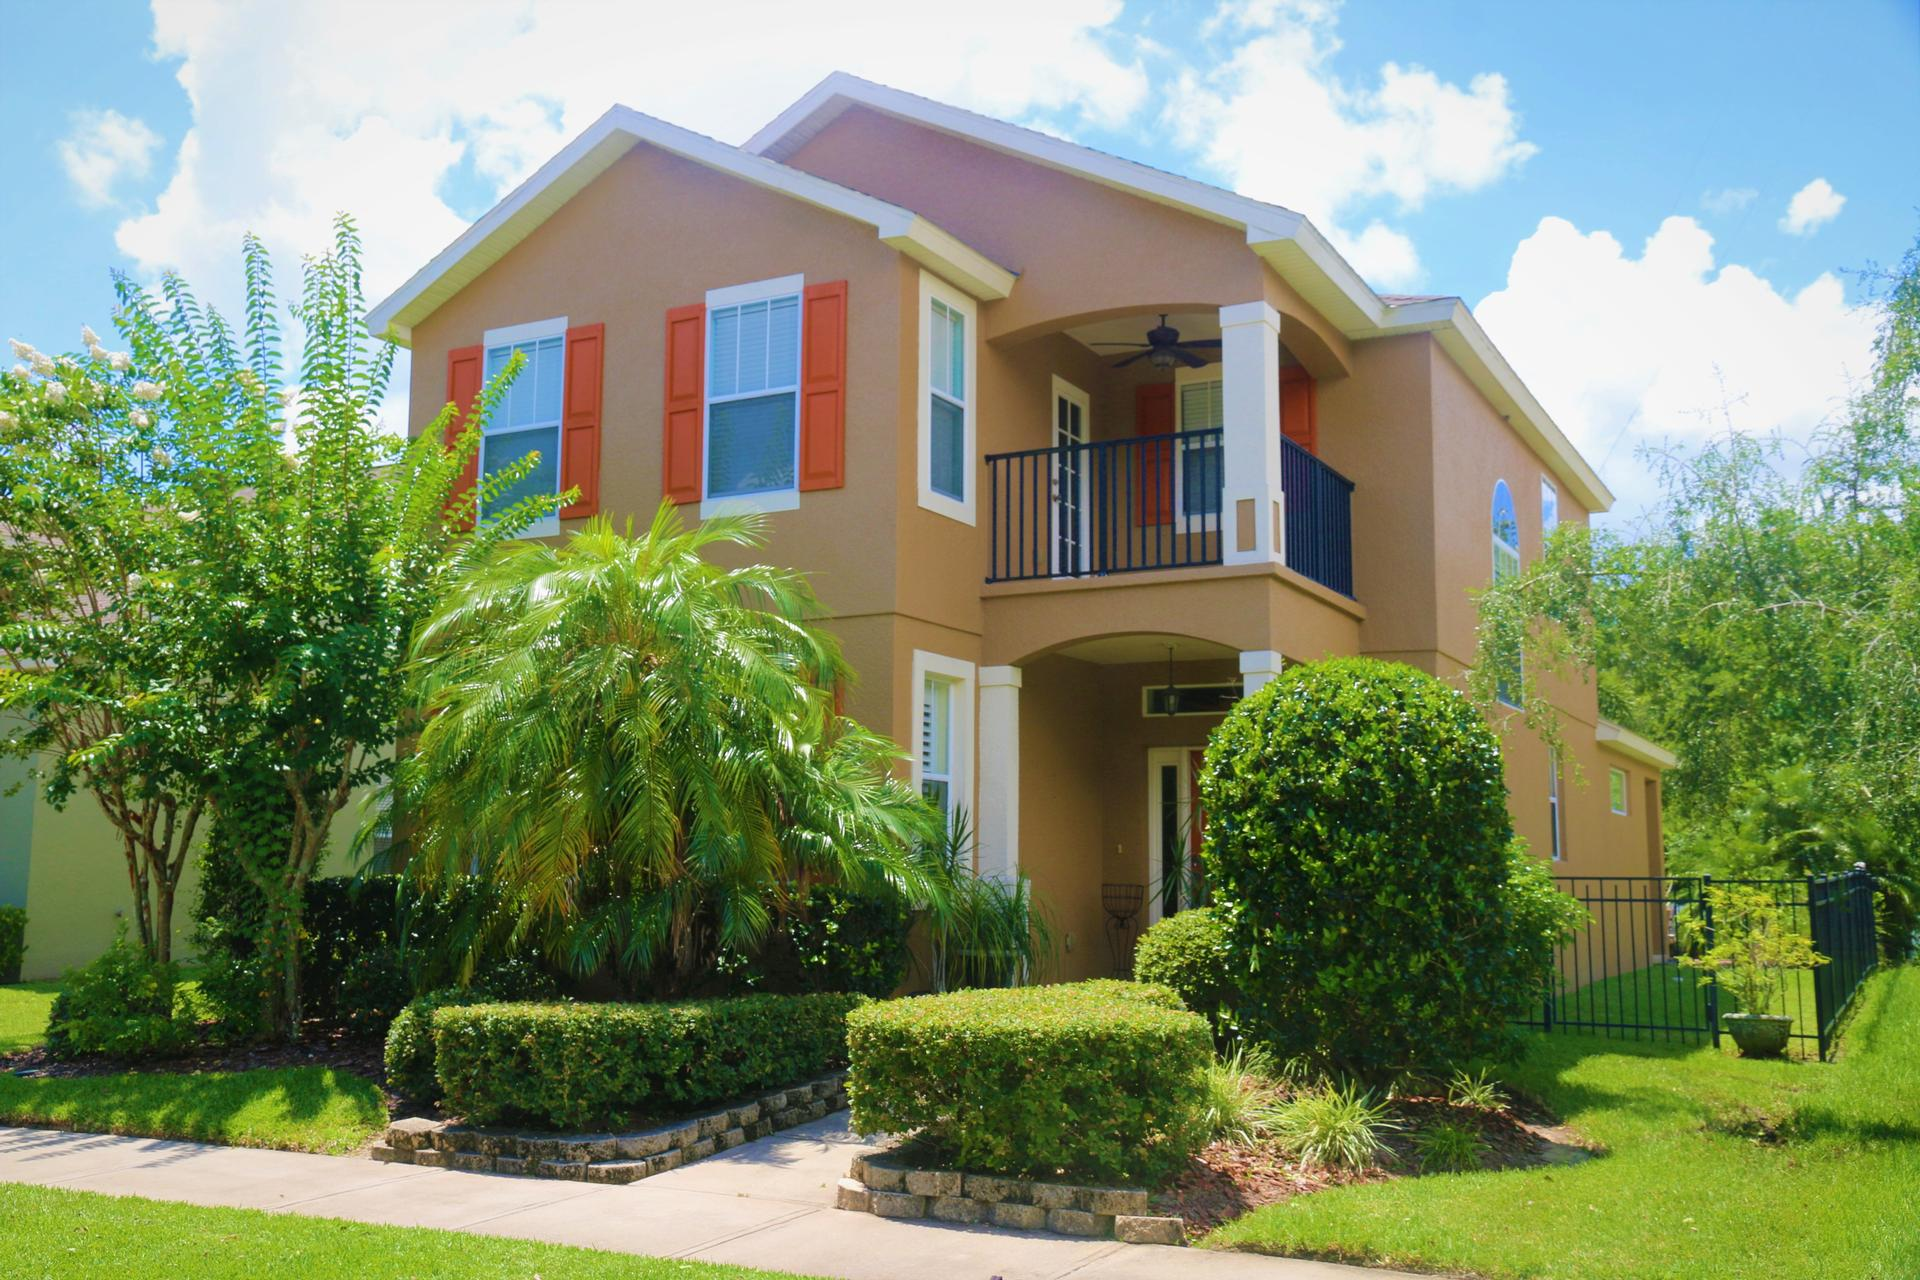 Photo of property: RENTED-639 Autumn Oaks Loop Winter Garden Fl 34787